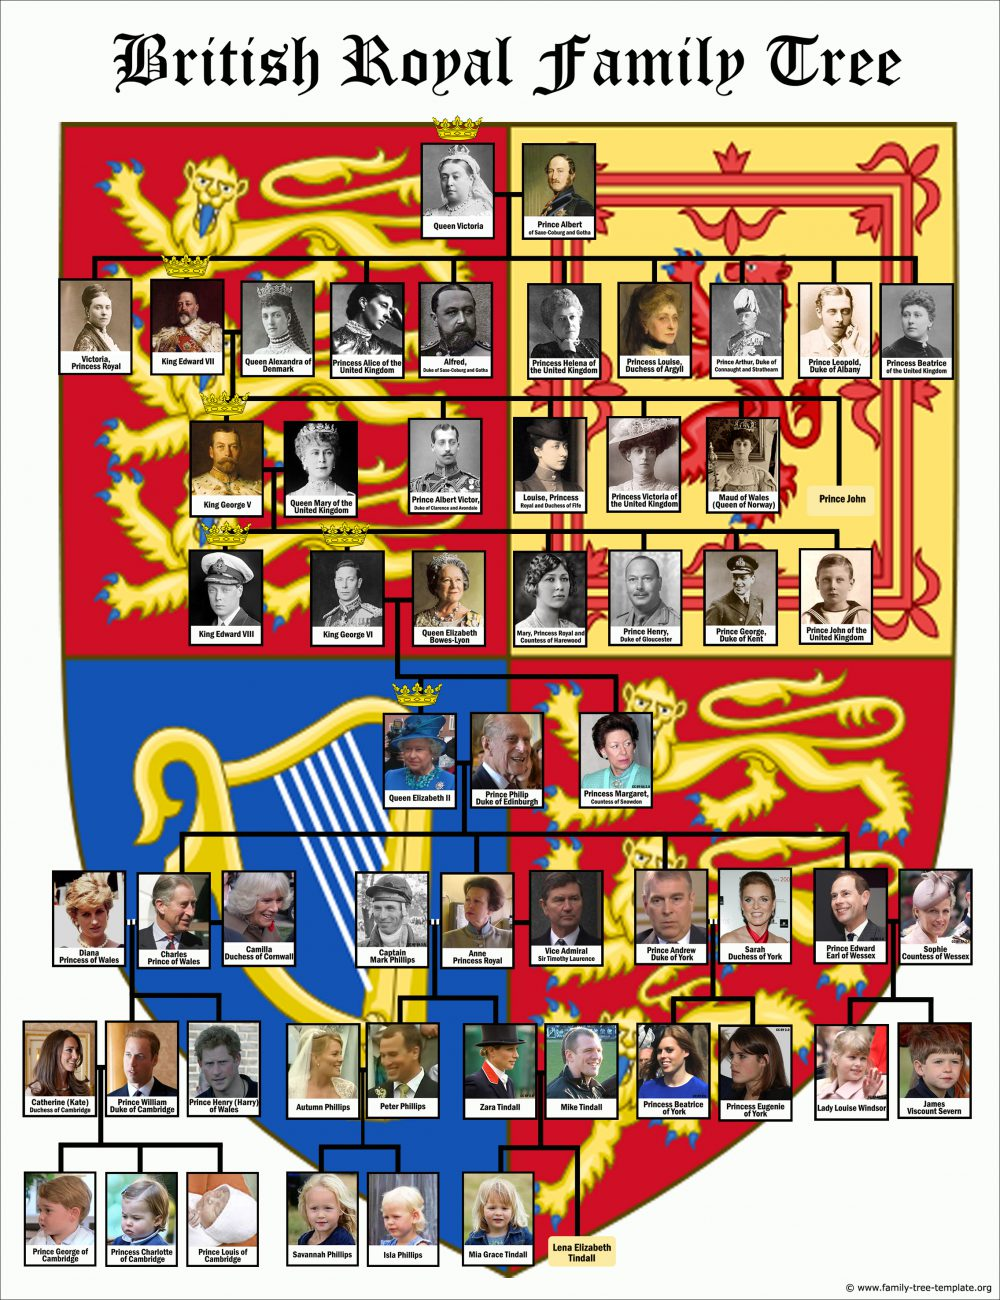 Decorative British royal family tree chart with 8 generations of kings and queens.